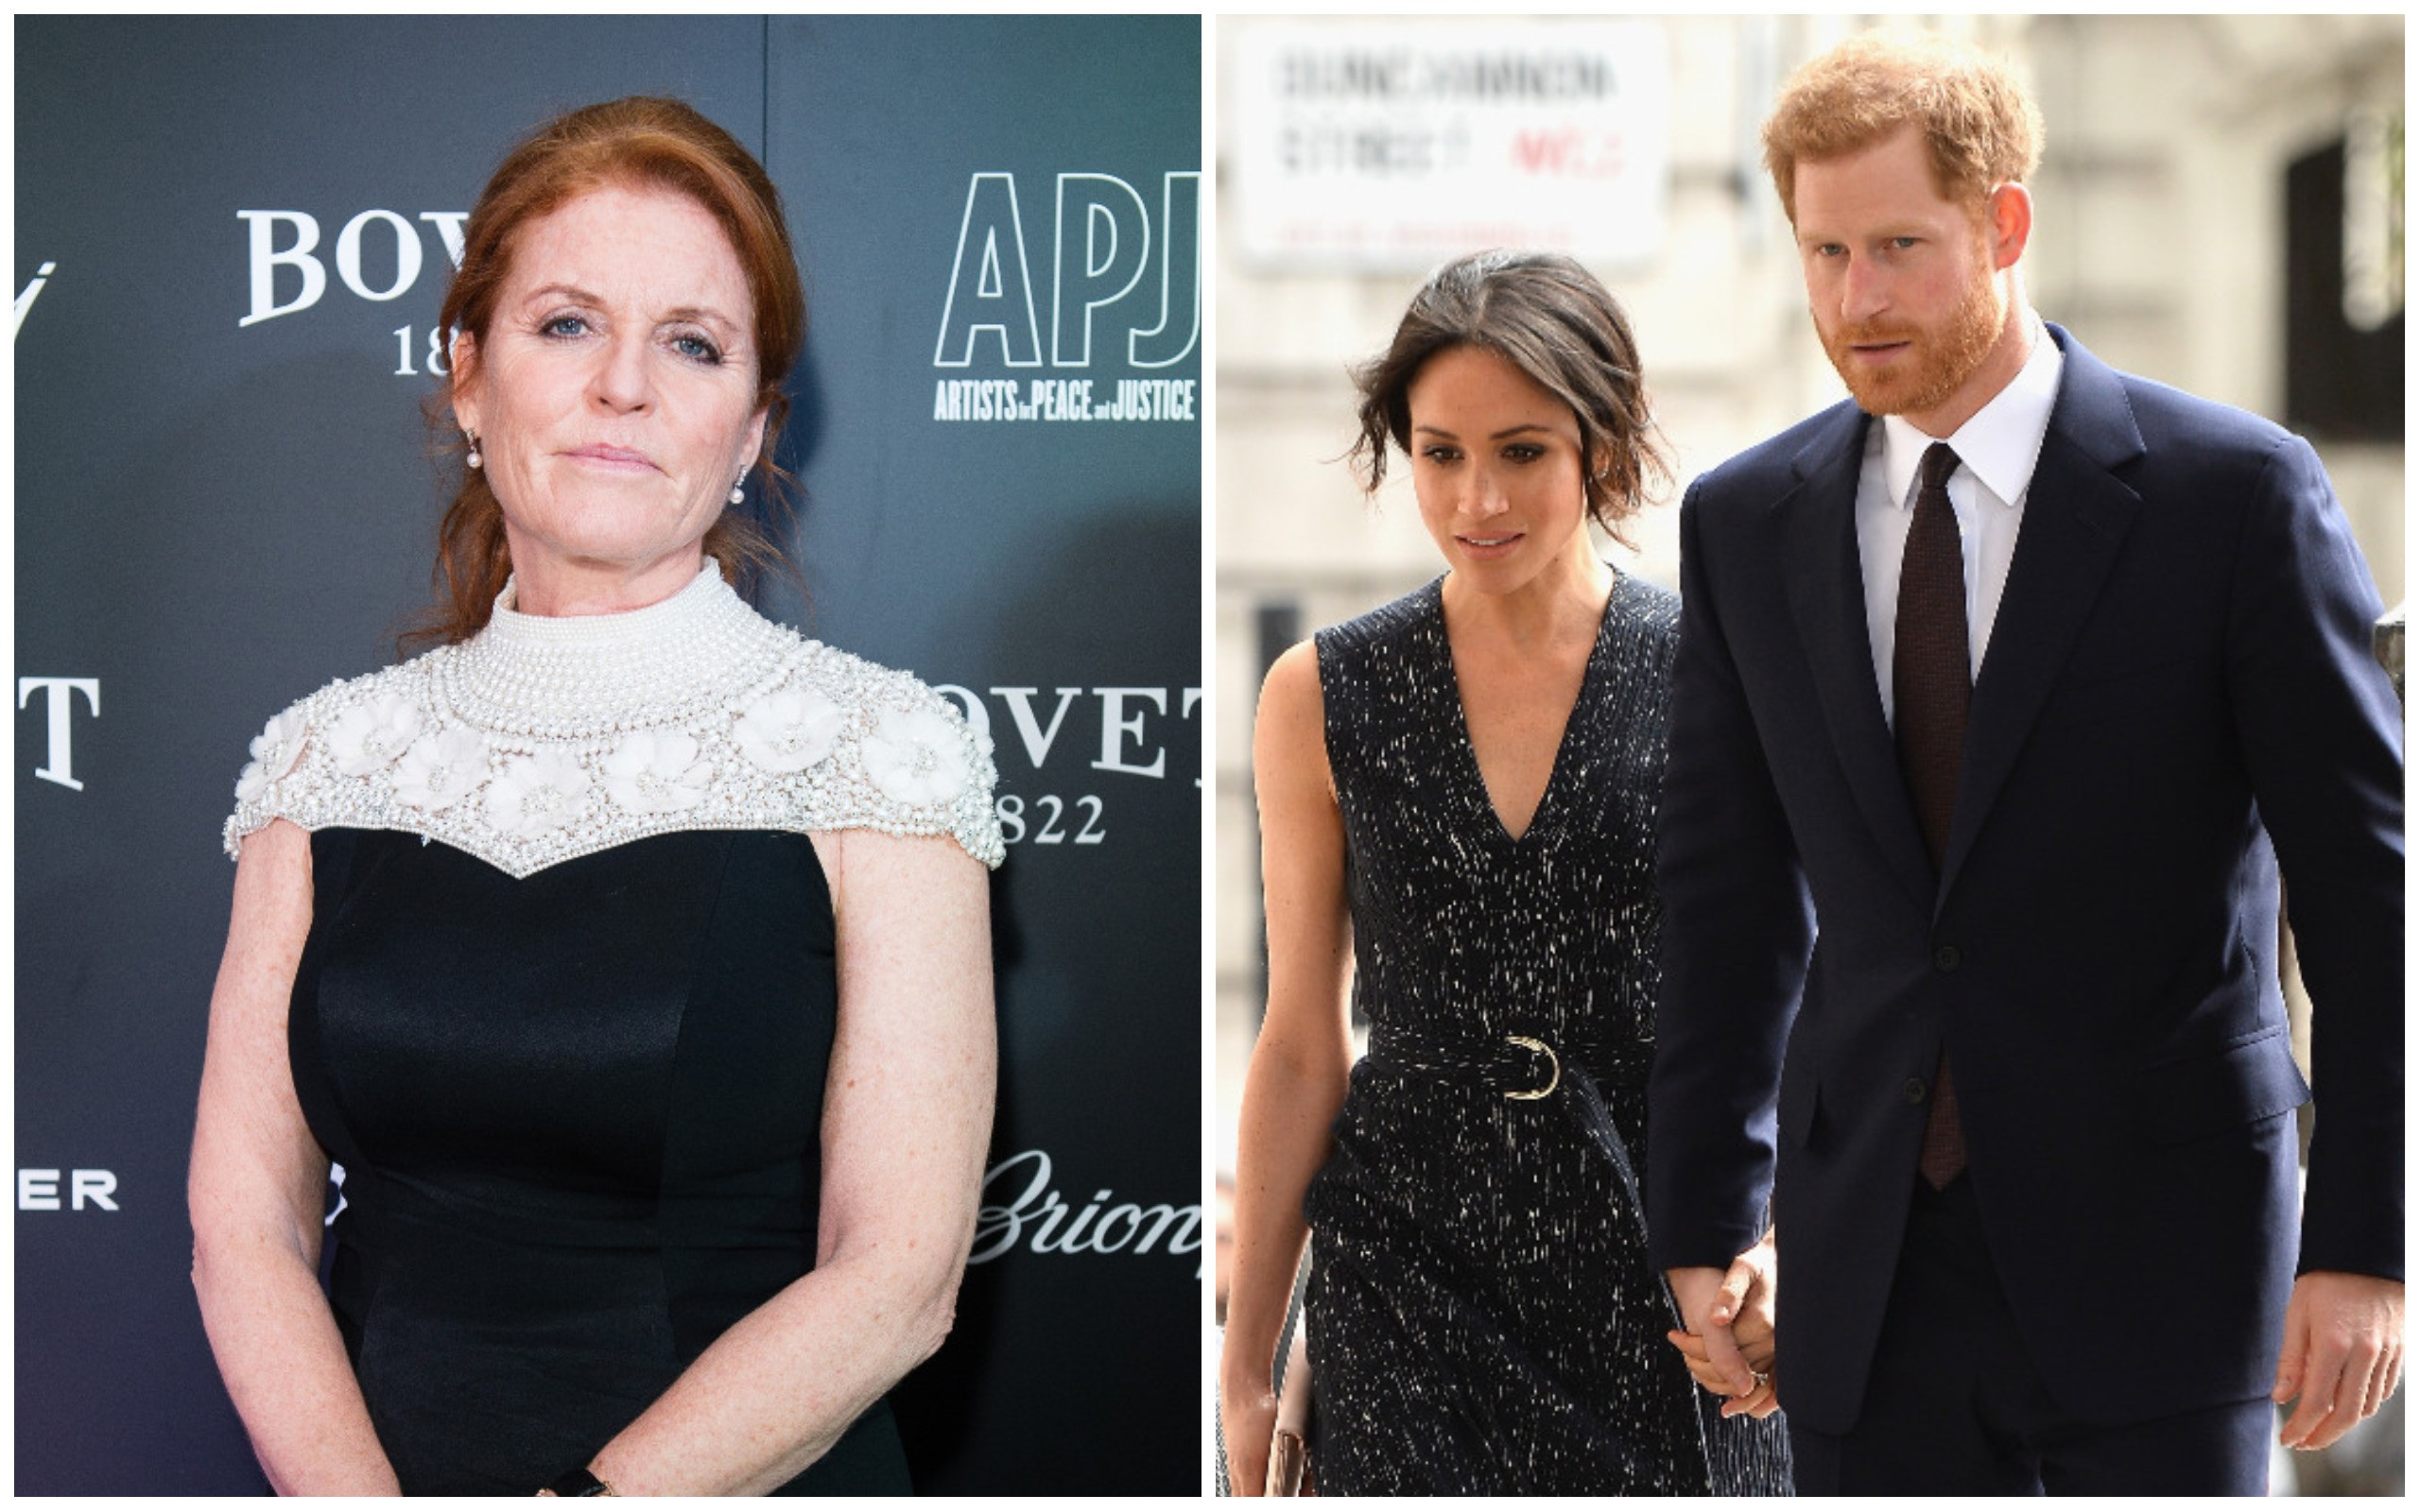 Sarah Ferguson Duquesa de York e Príncipe Harry e Meghan Markle (Foto: Getty Images)